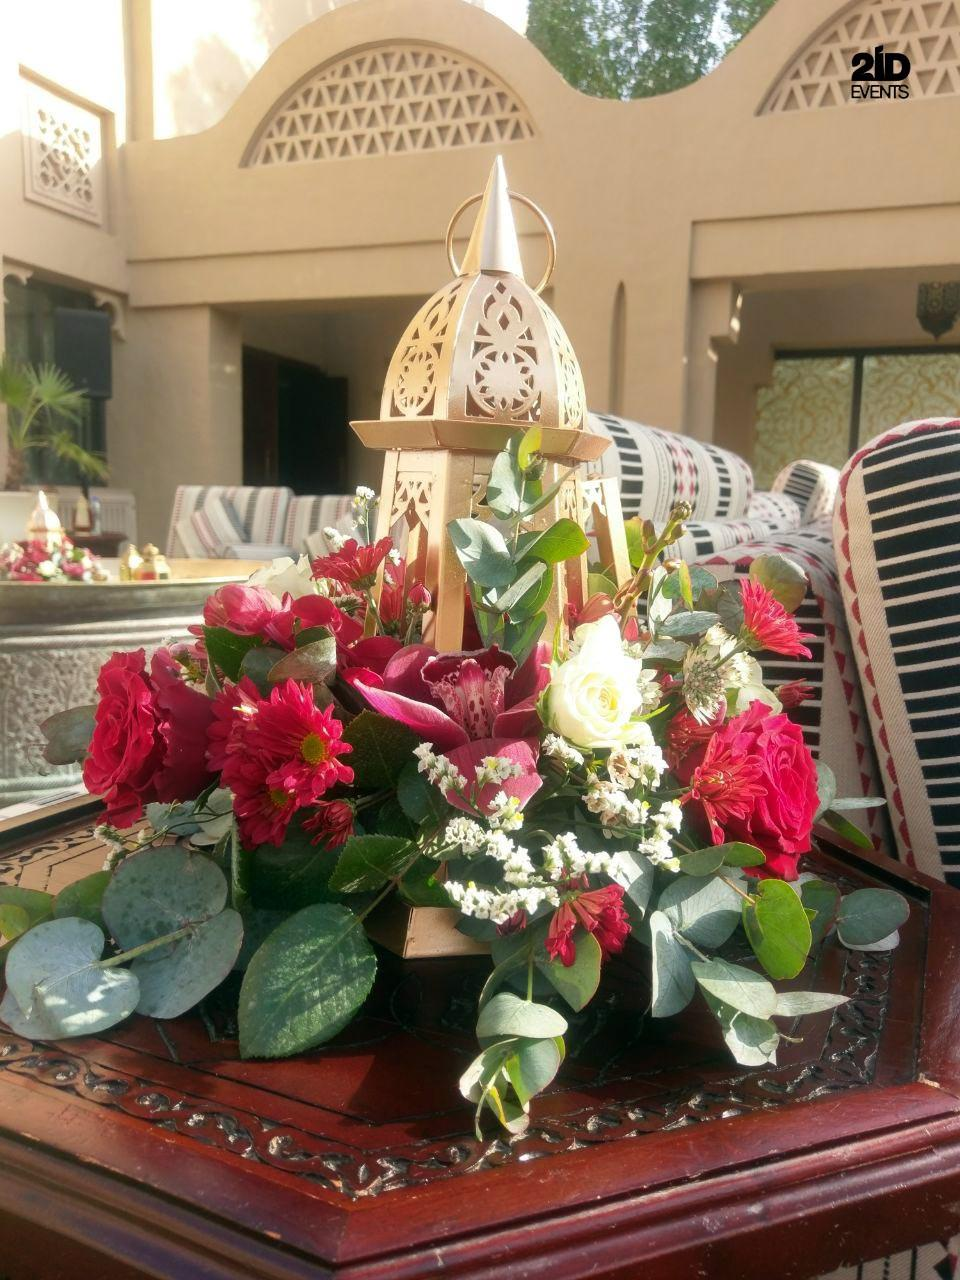 5 - ARABIAN STYLE DECOR FOR CORPORATE EVENT